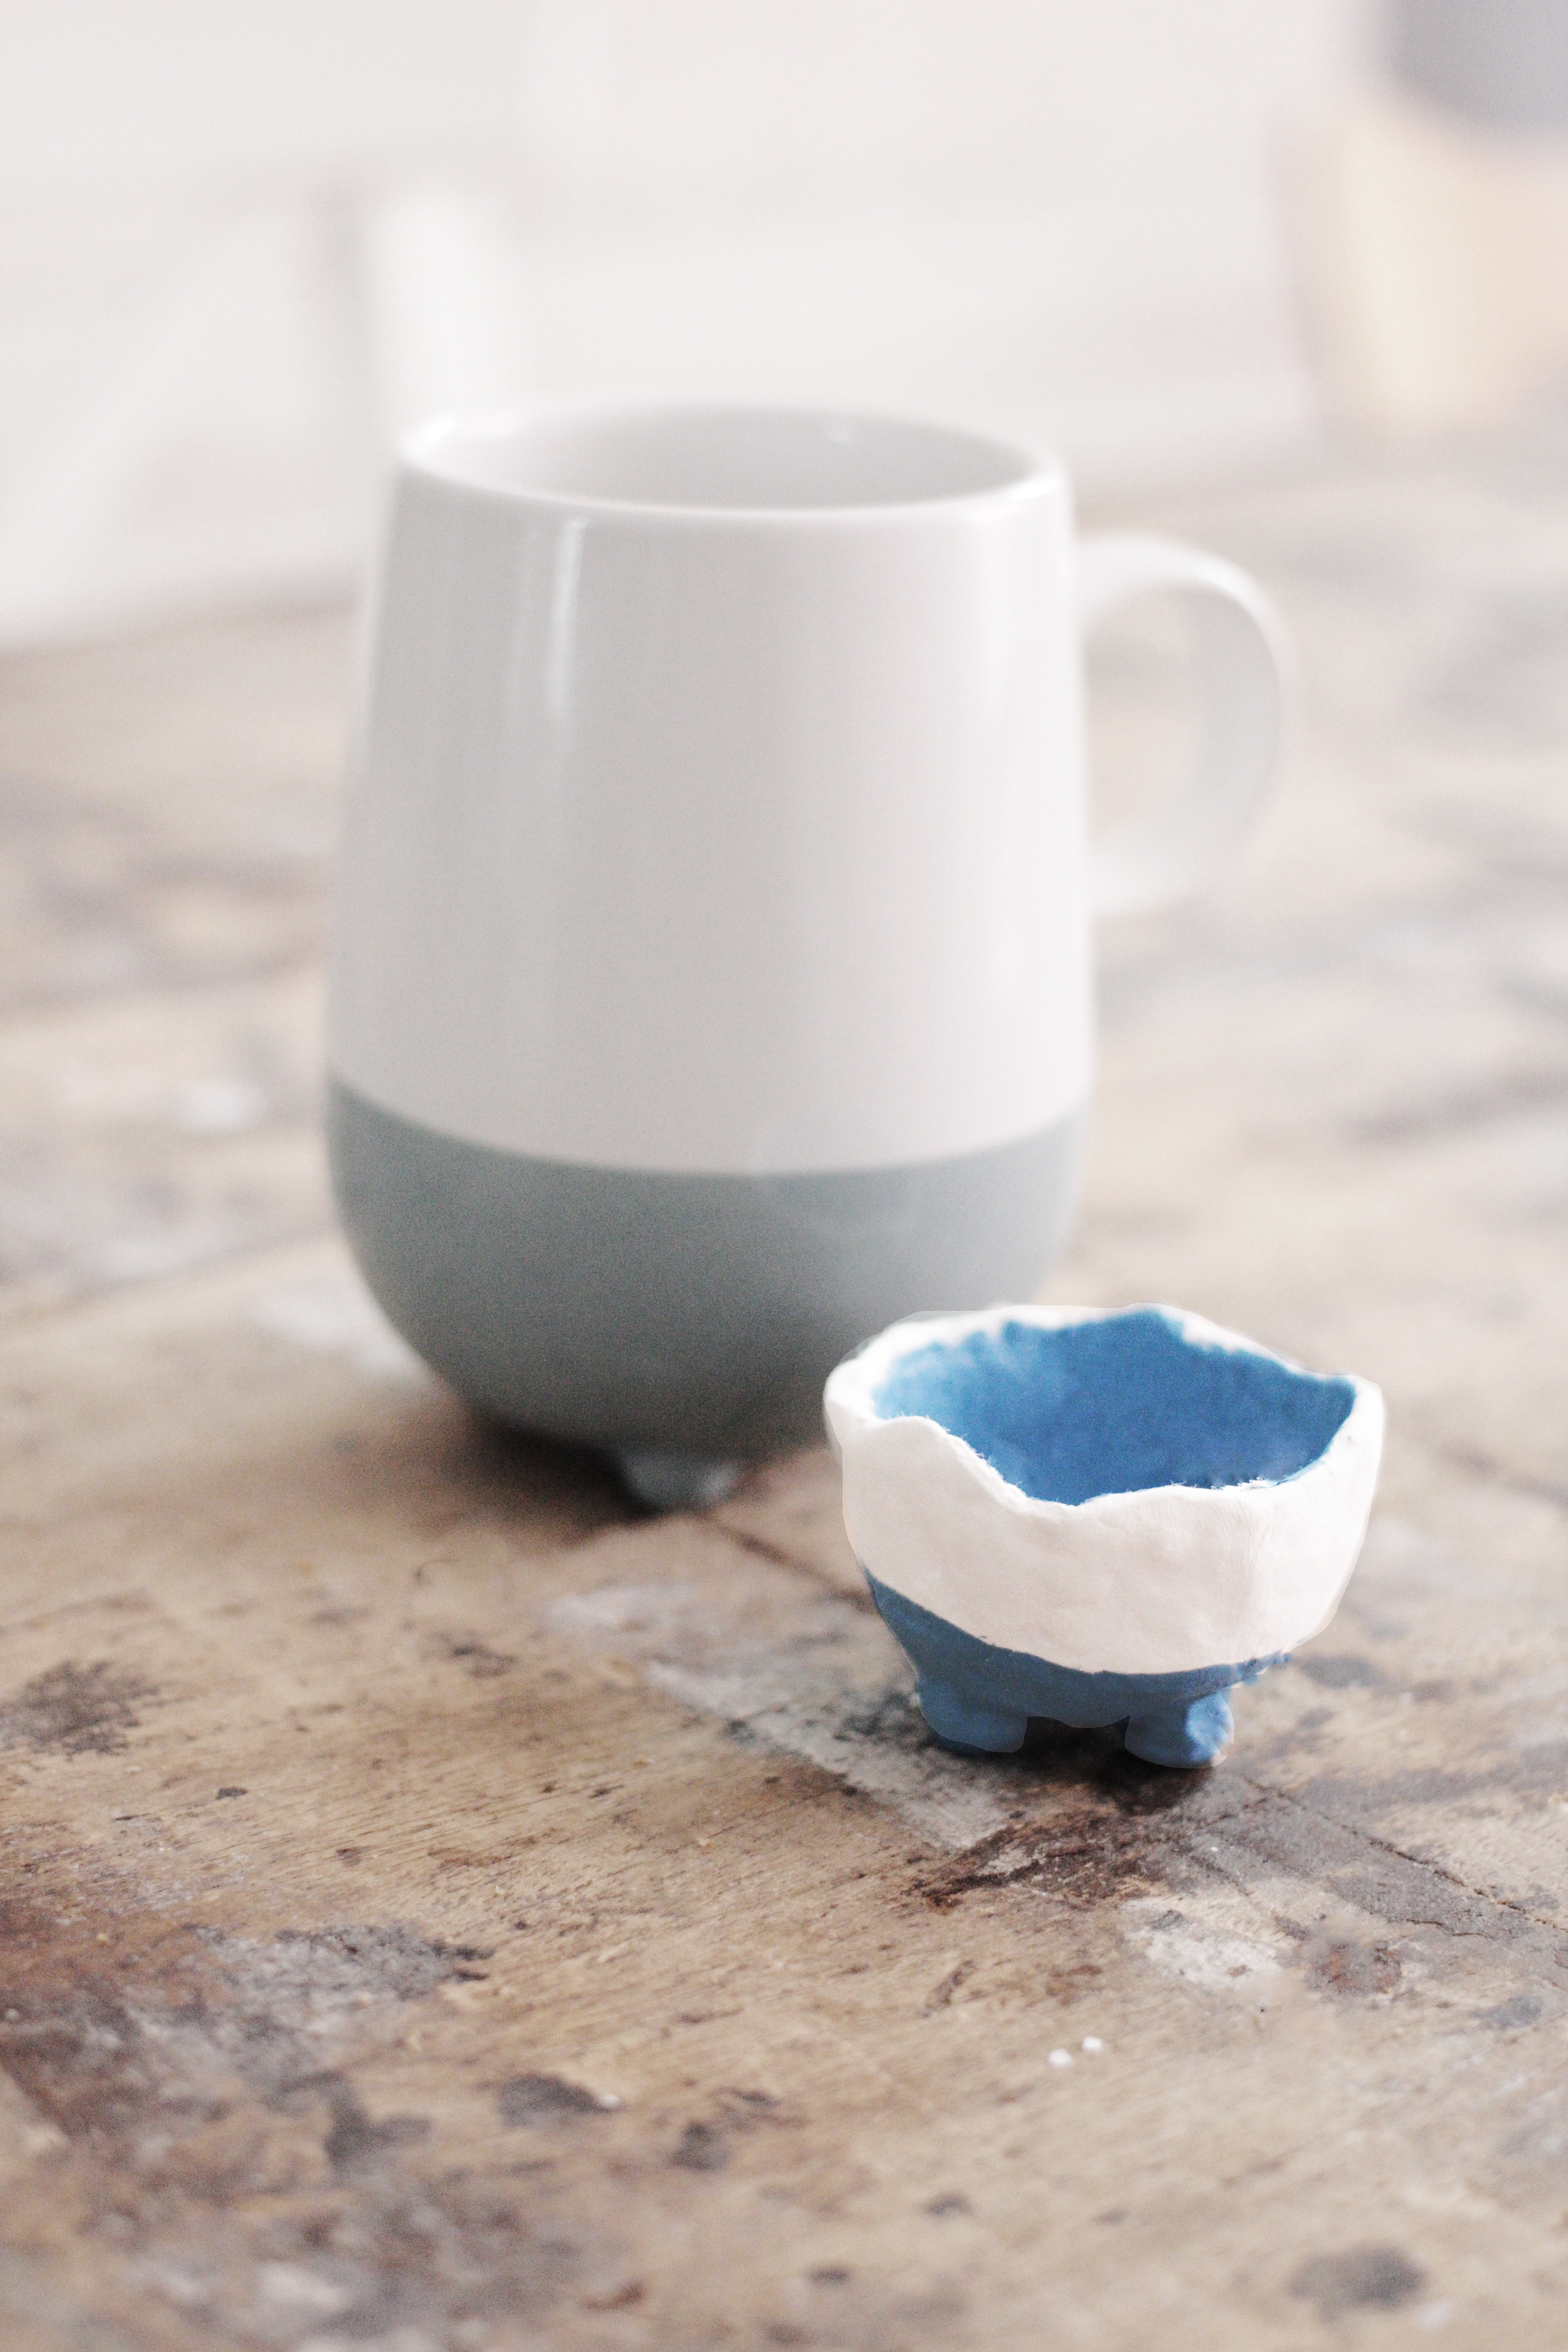 The cup that inspired me to make the little egg cups on legs